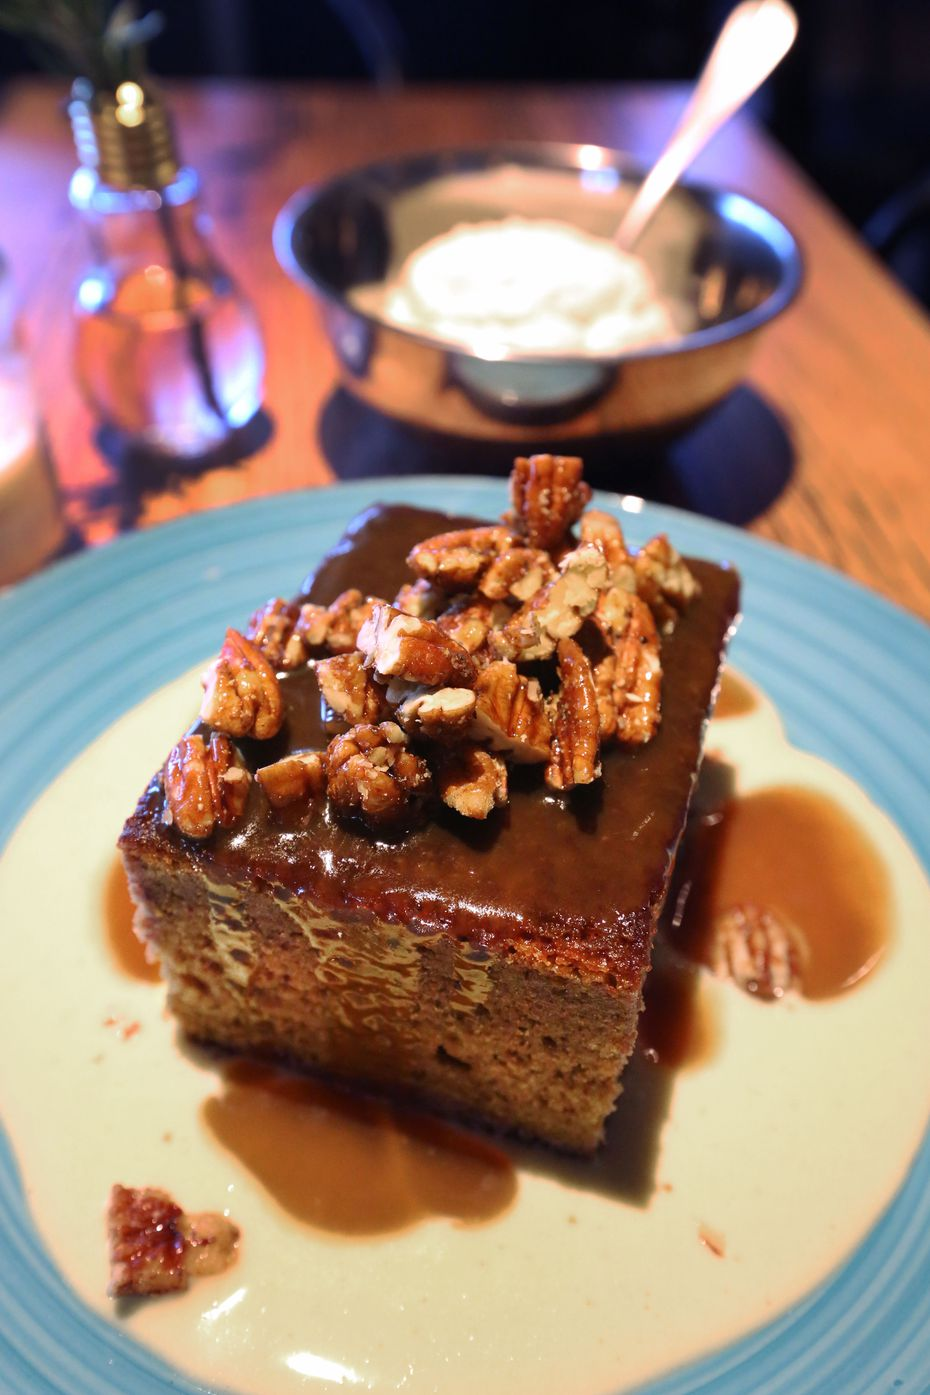 The whiskey cake is a must get at Whiskey Cake in Plano and Las Colinas.